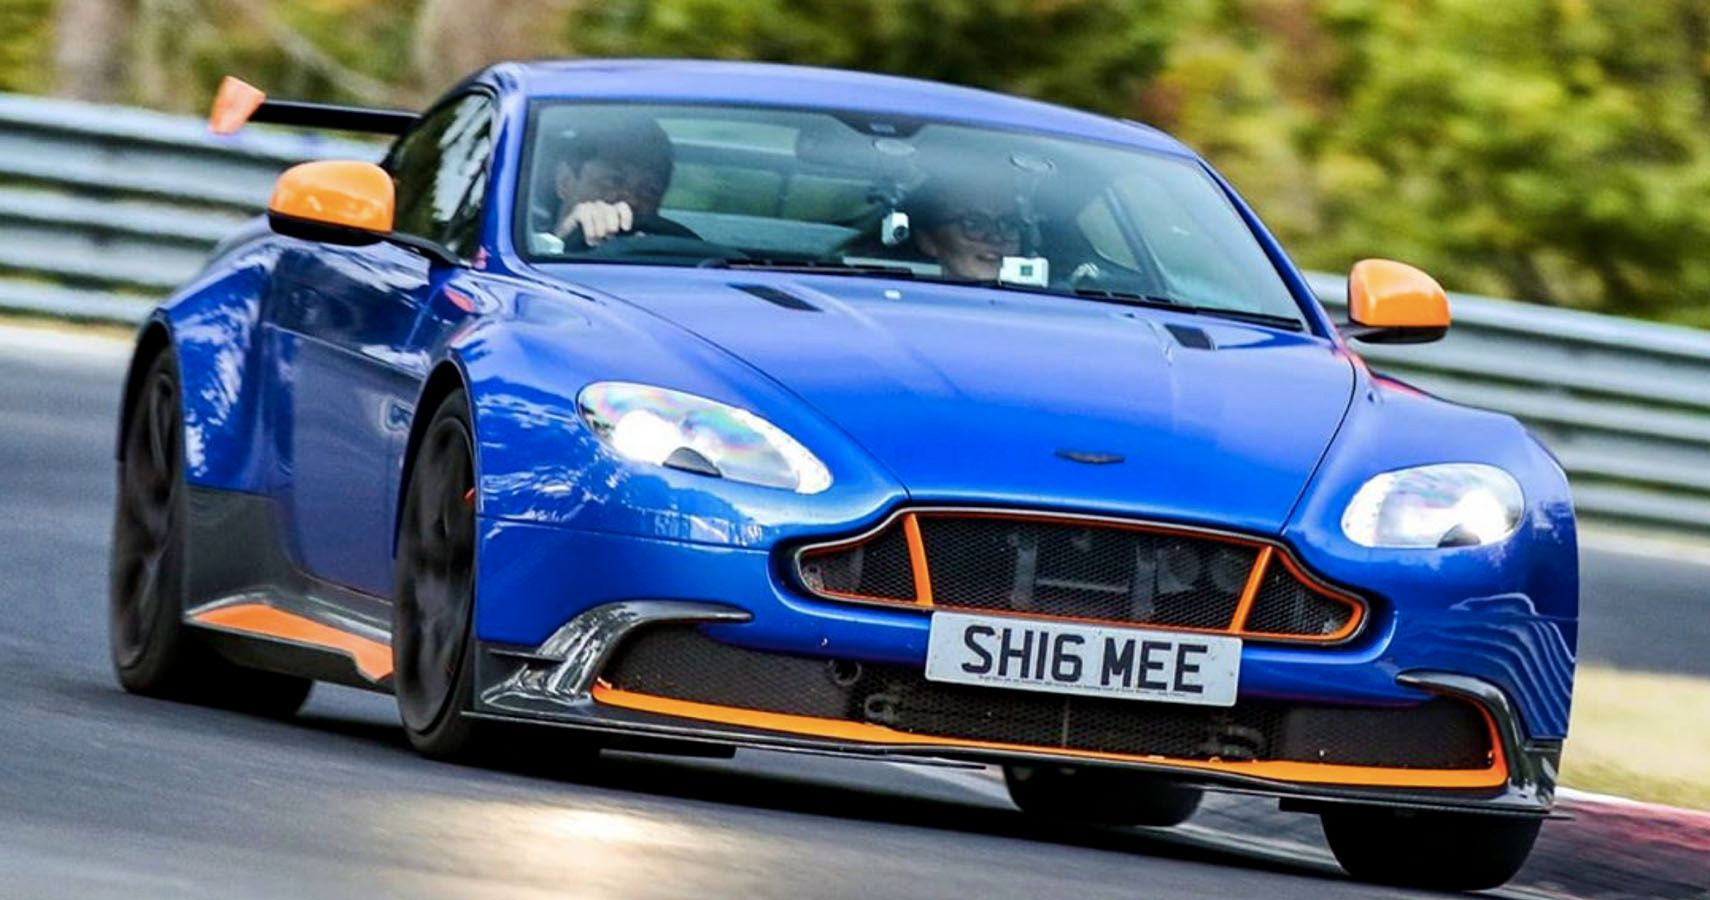 Watch Shmee150 Hit The Nurburgring In His Aston Martin Vantage GT8